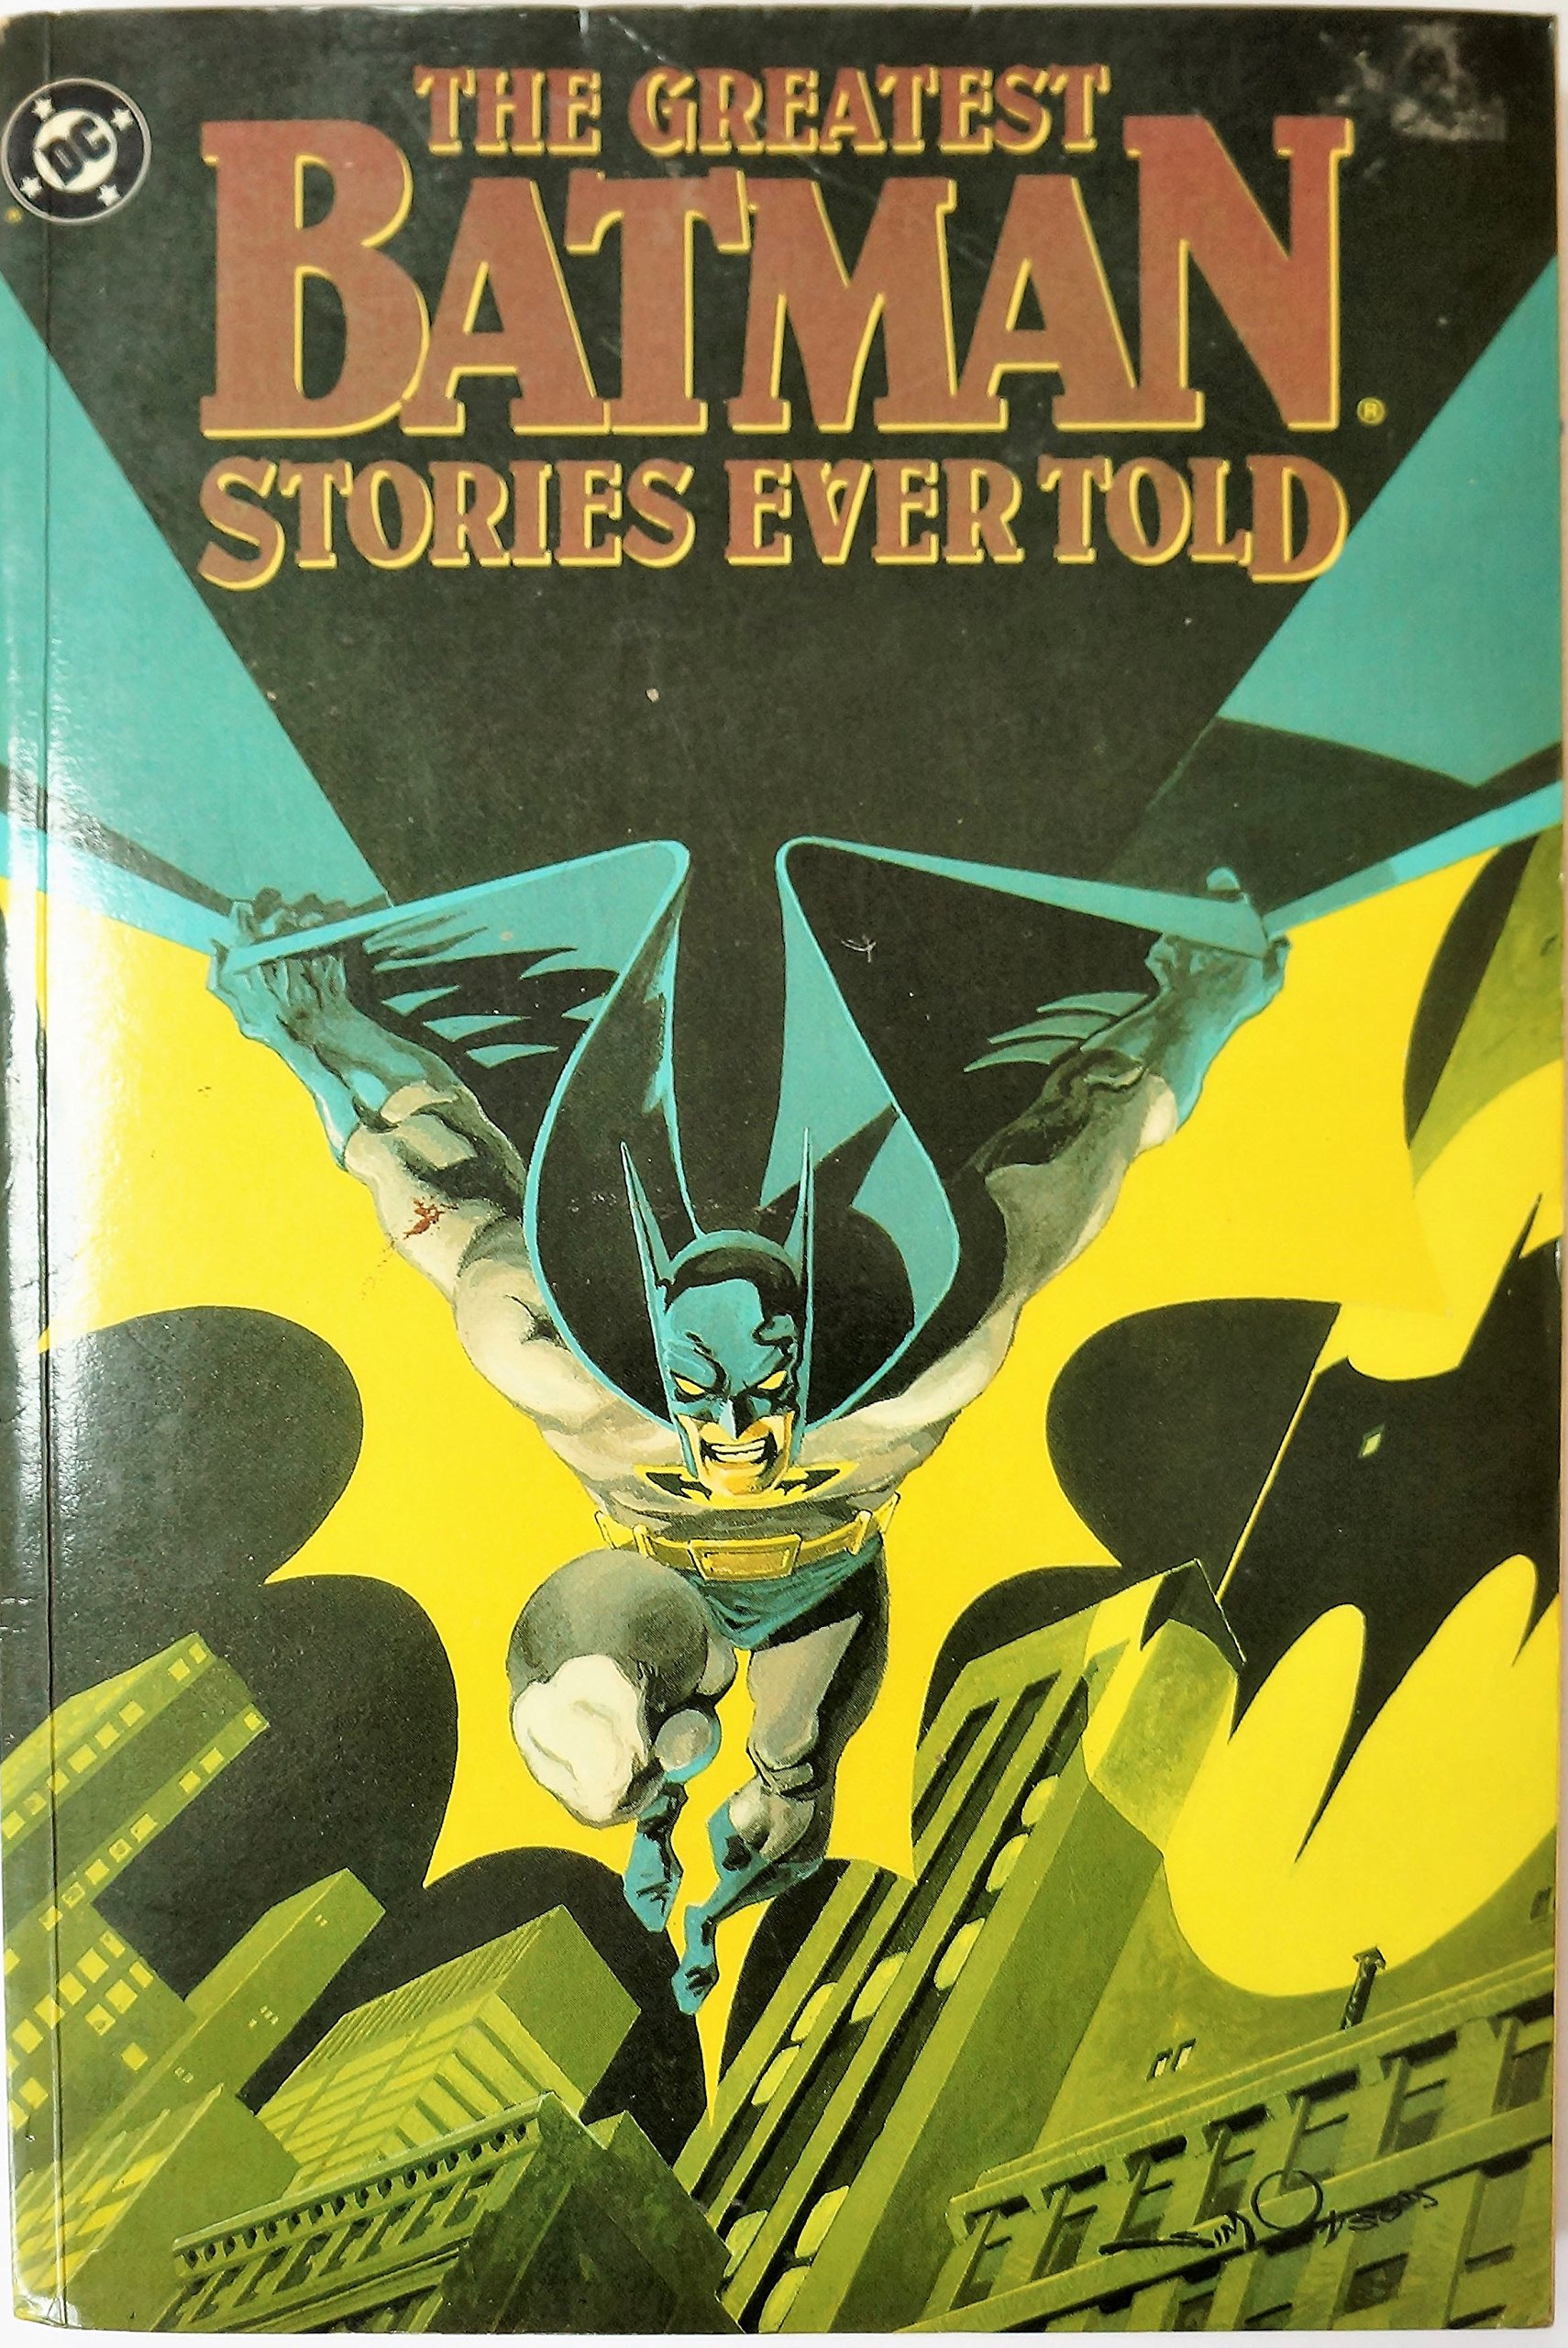 Cover of The Greatest Batman Stories Ever Told